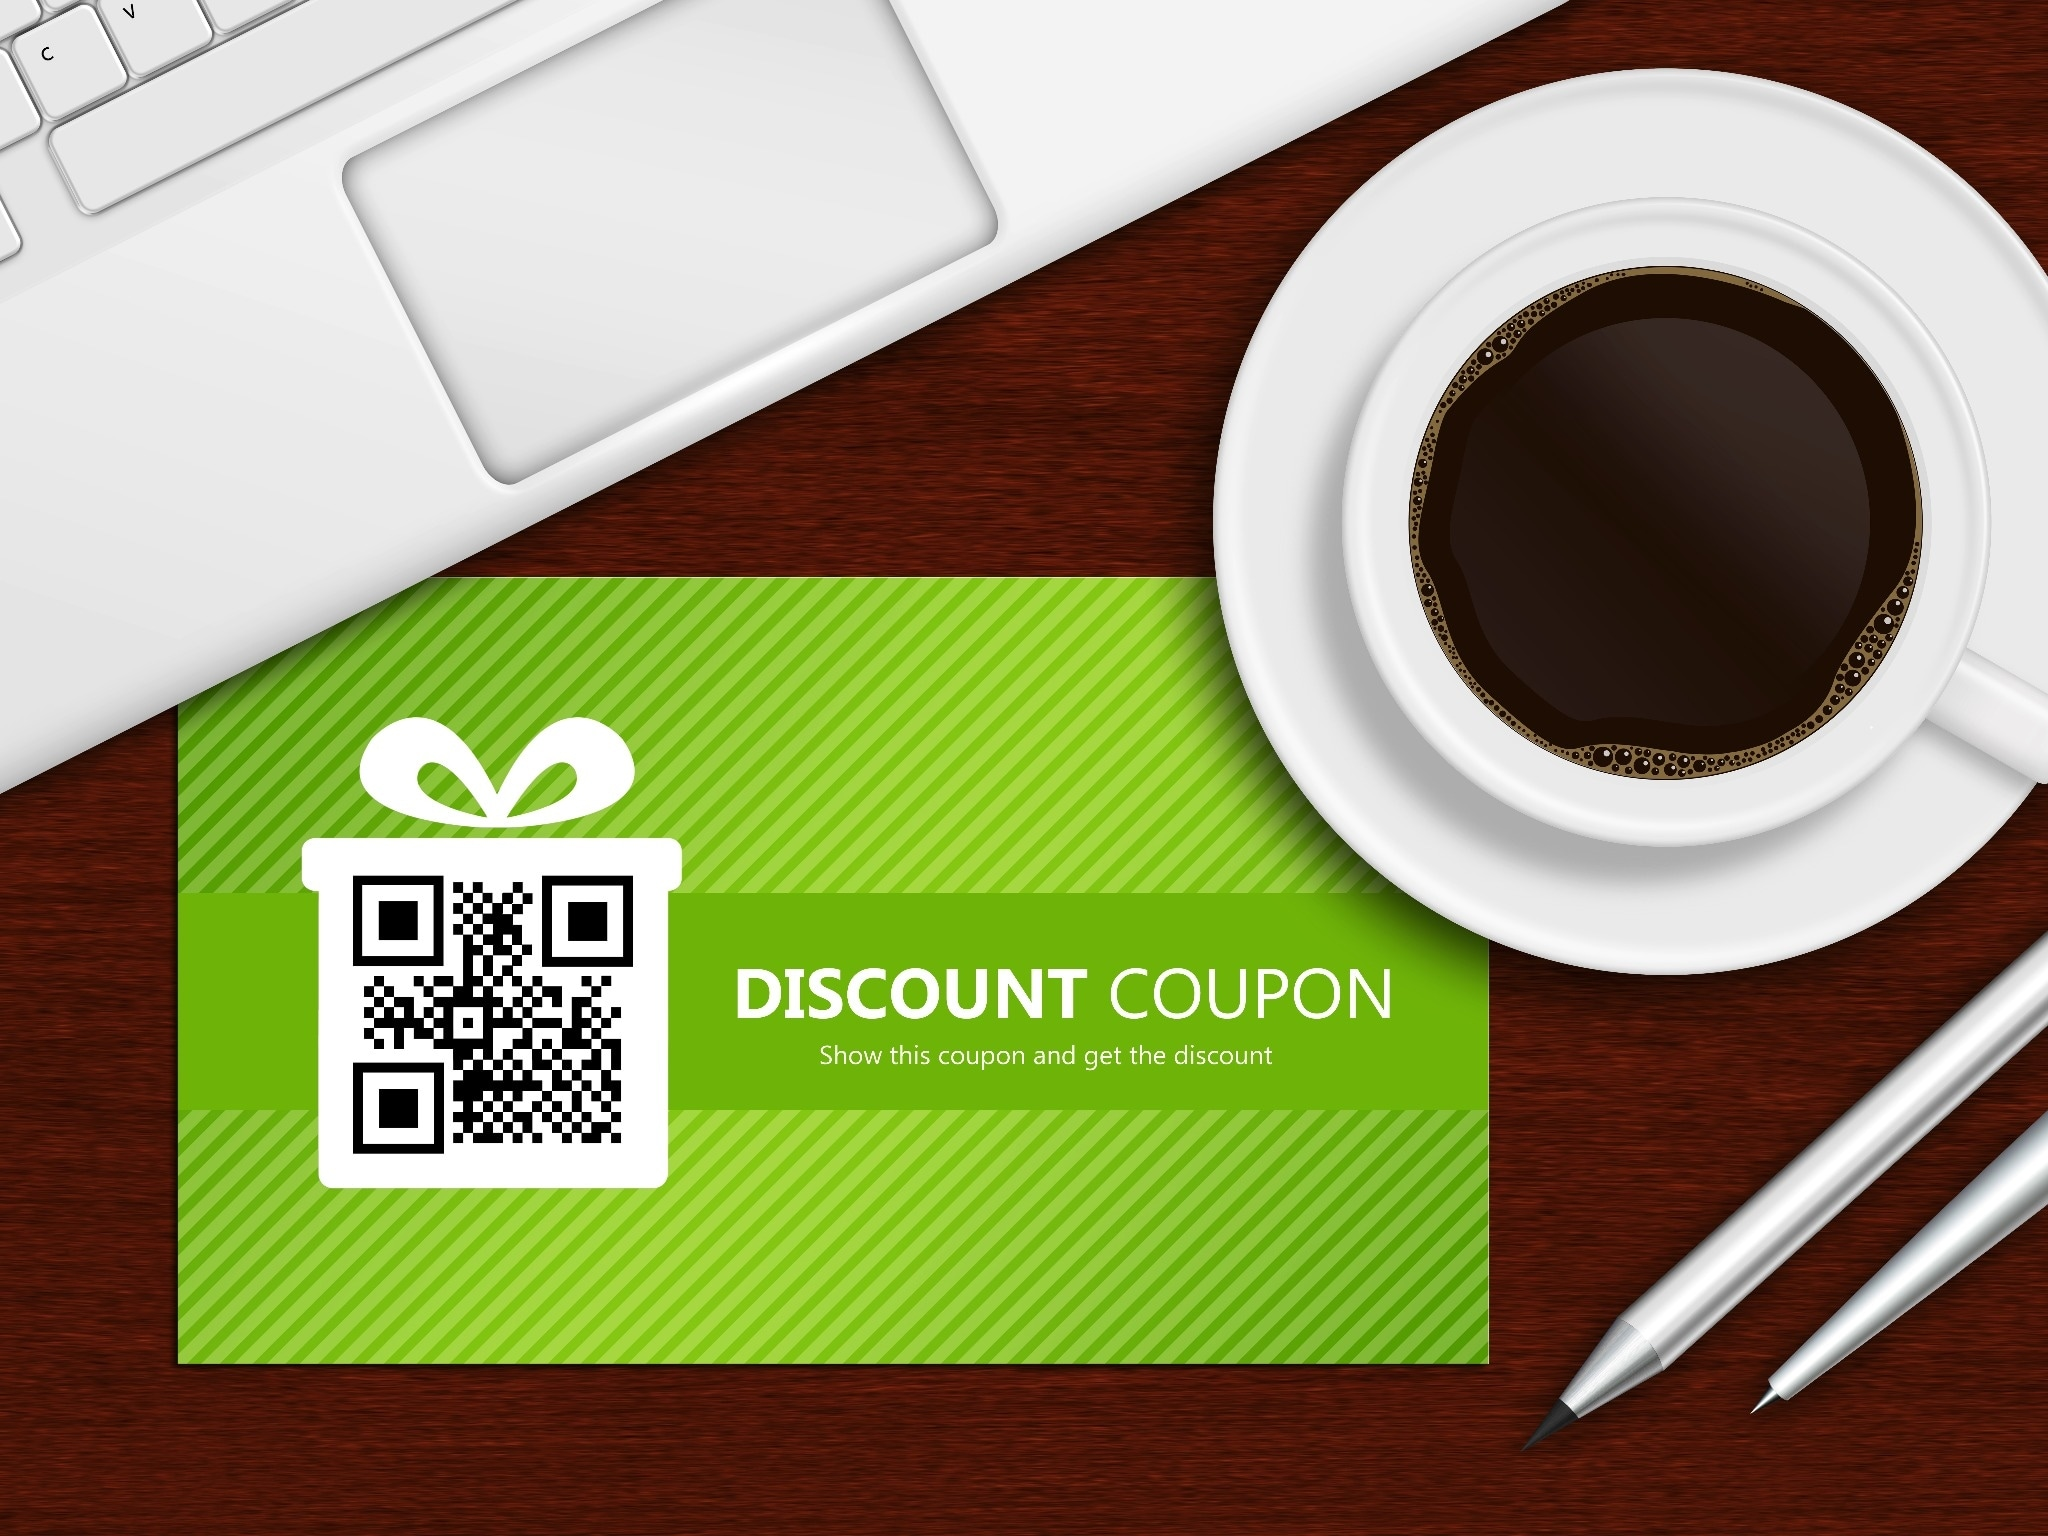 Where to Find and Print Free Internet Coupons